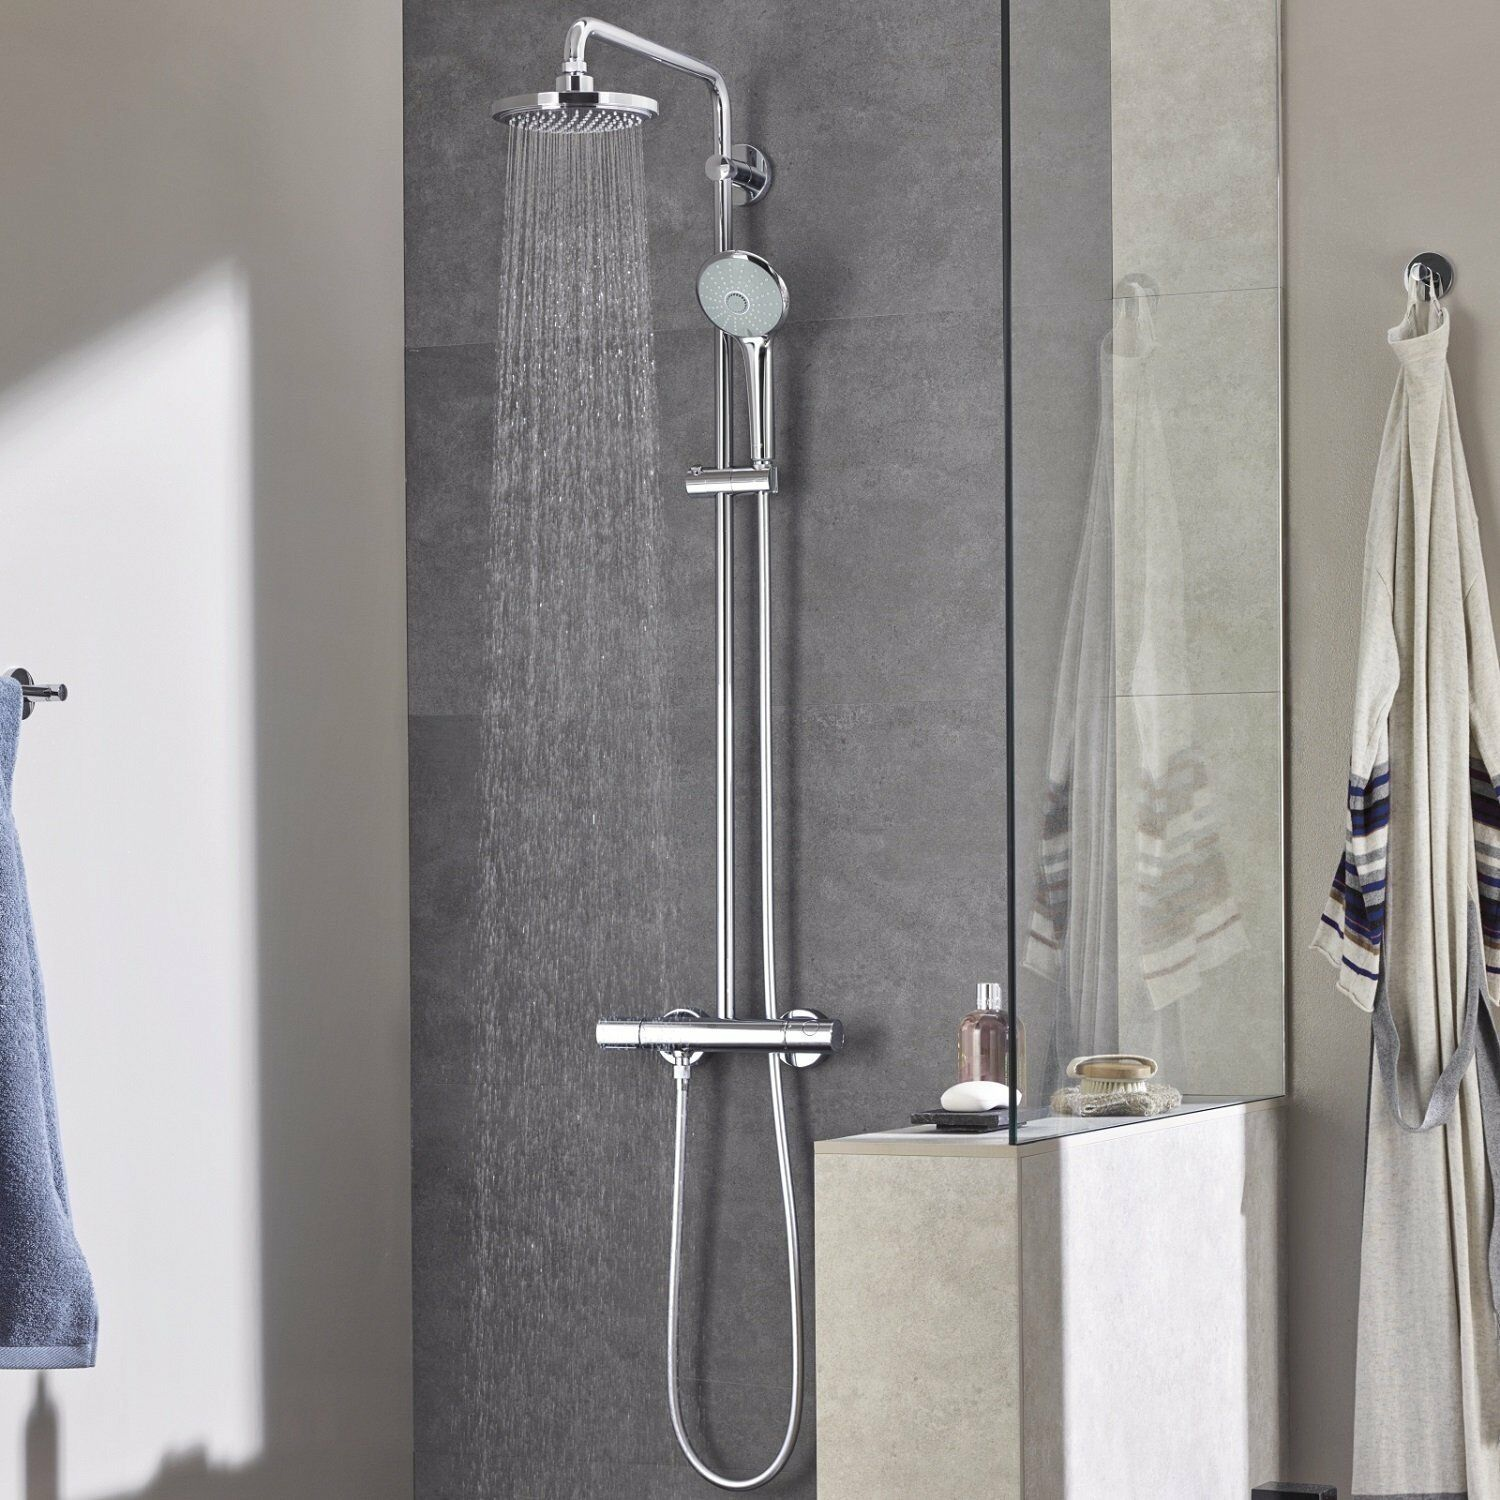 Grohe 27296001 Euphoria 180 Thermostatic Shower With Bar Shower Mixer 4005176896293 Ebay